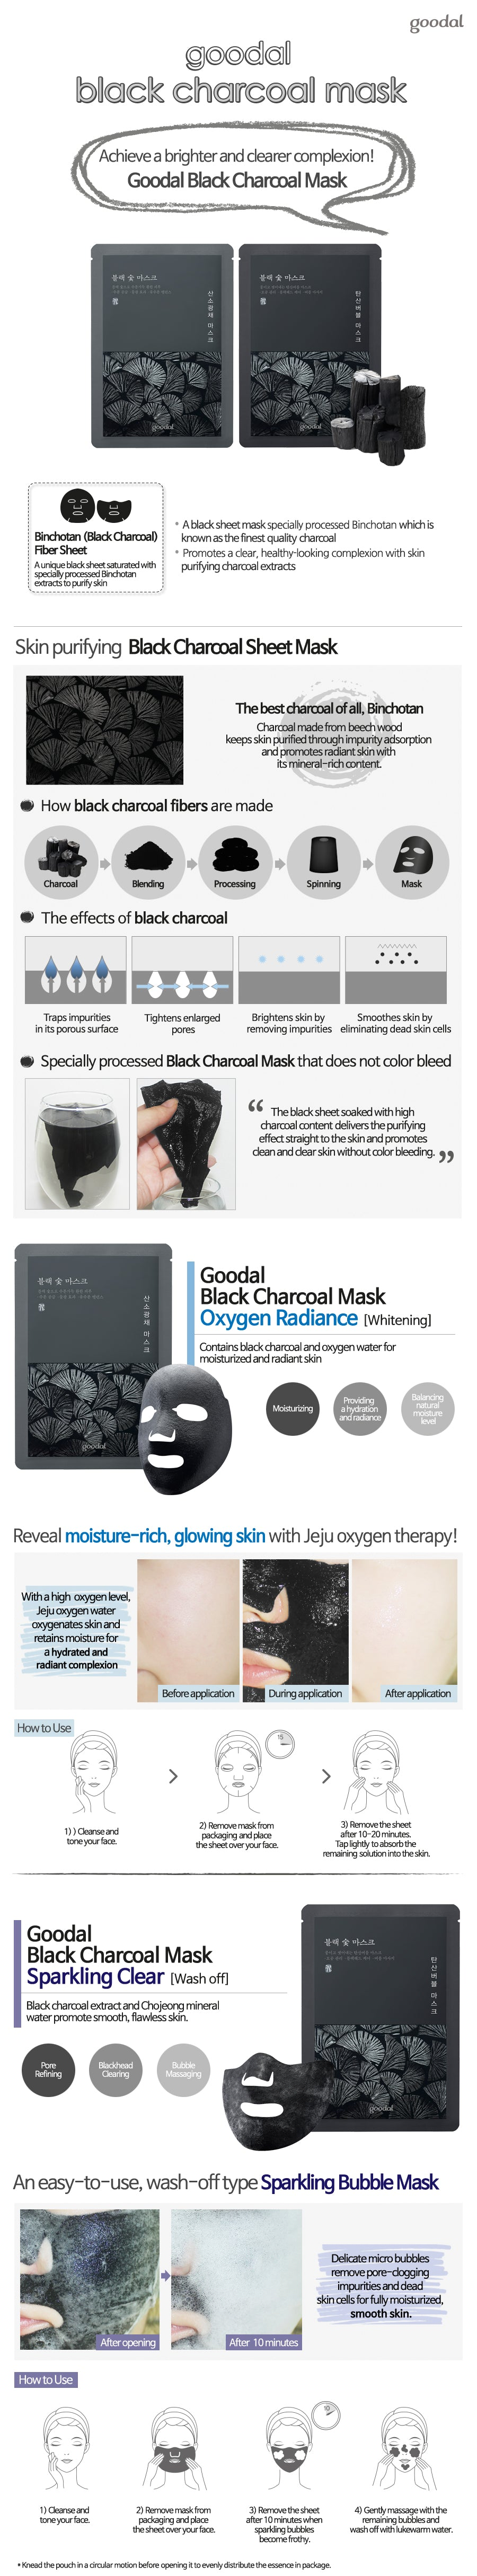 googal Black Charoal mask